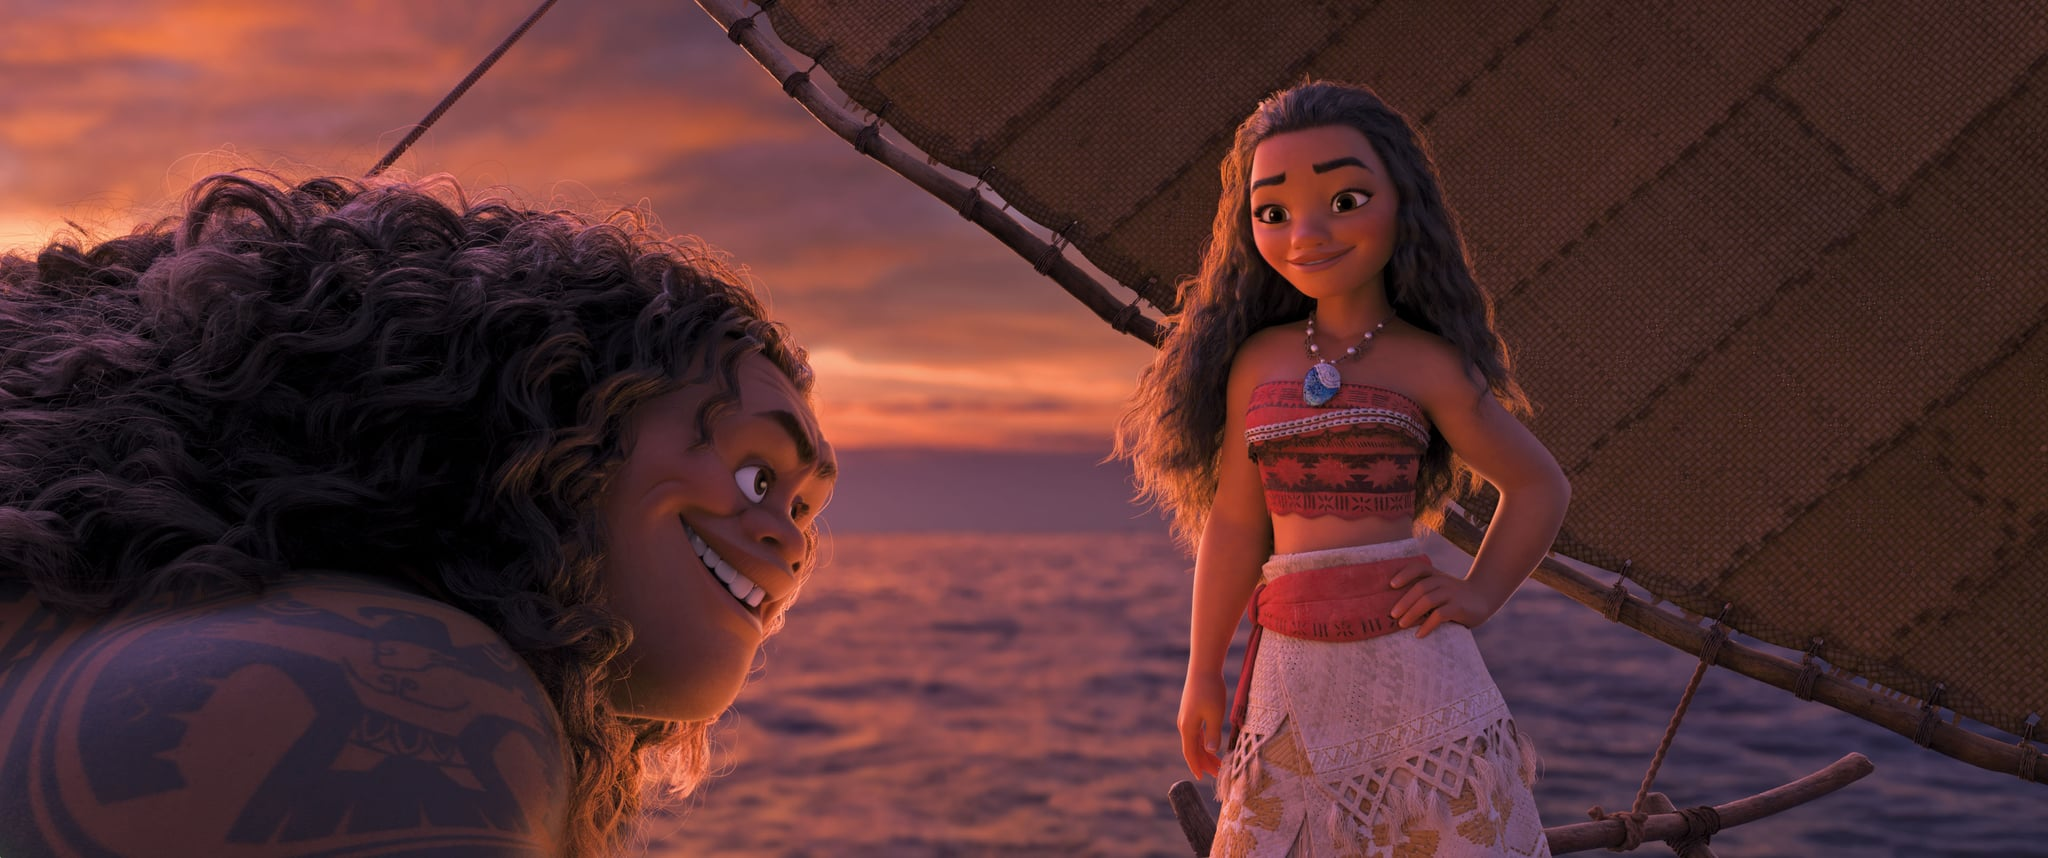 MOANA, from left, Maui (voice: Dwayne Johnson), Moana (voice: Auli'i Cravalho), 2016.  Walt Disney Studios Motion Pictures / courtesy Everett Collection